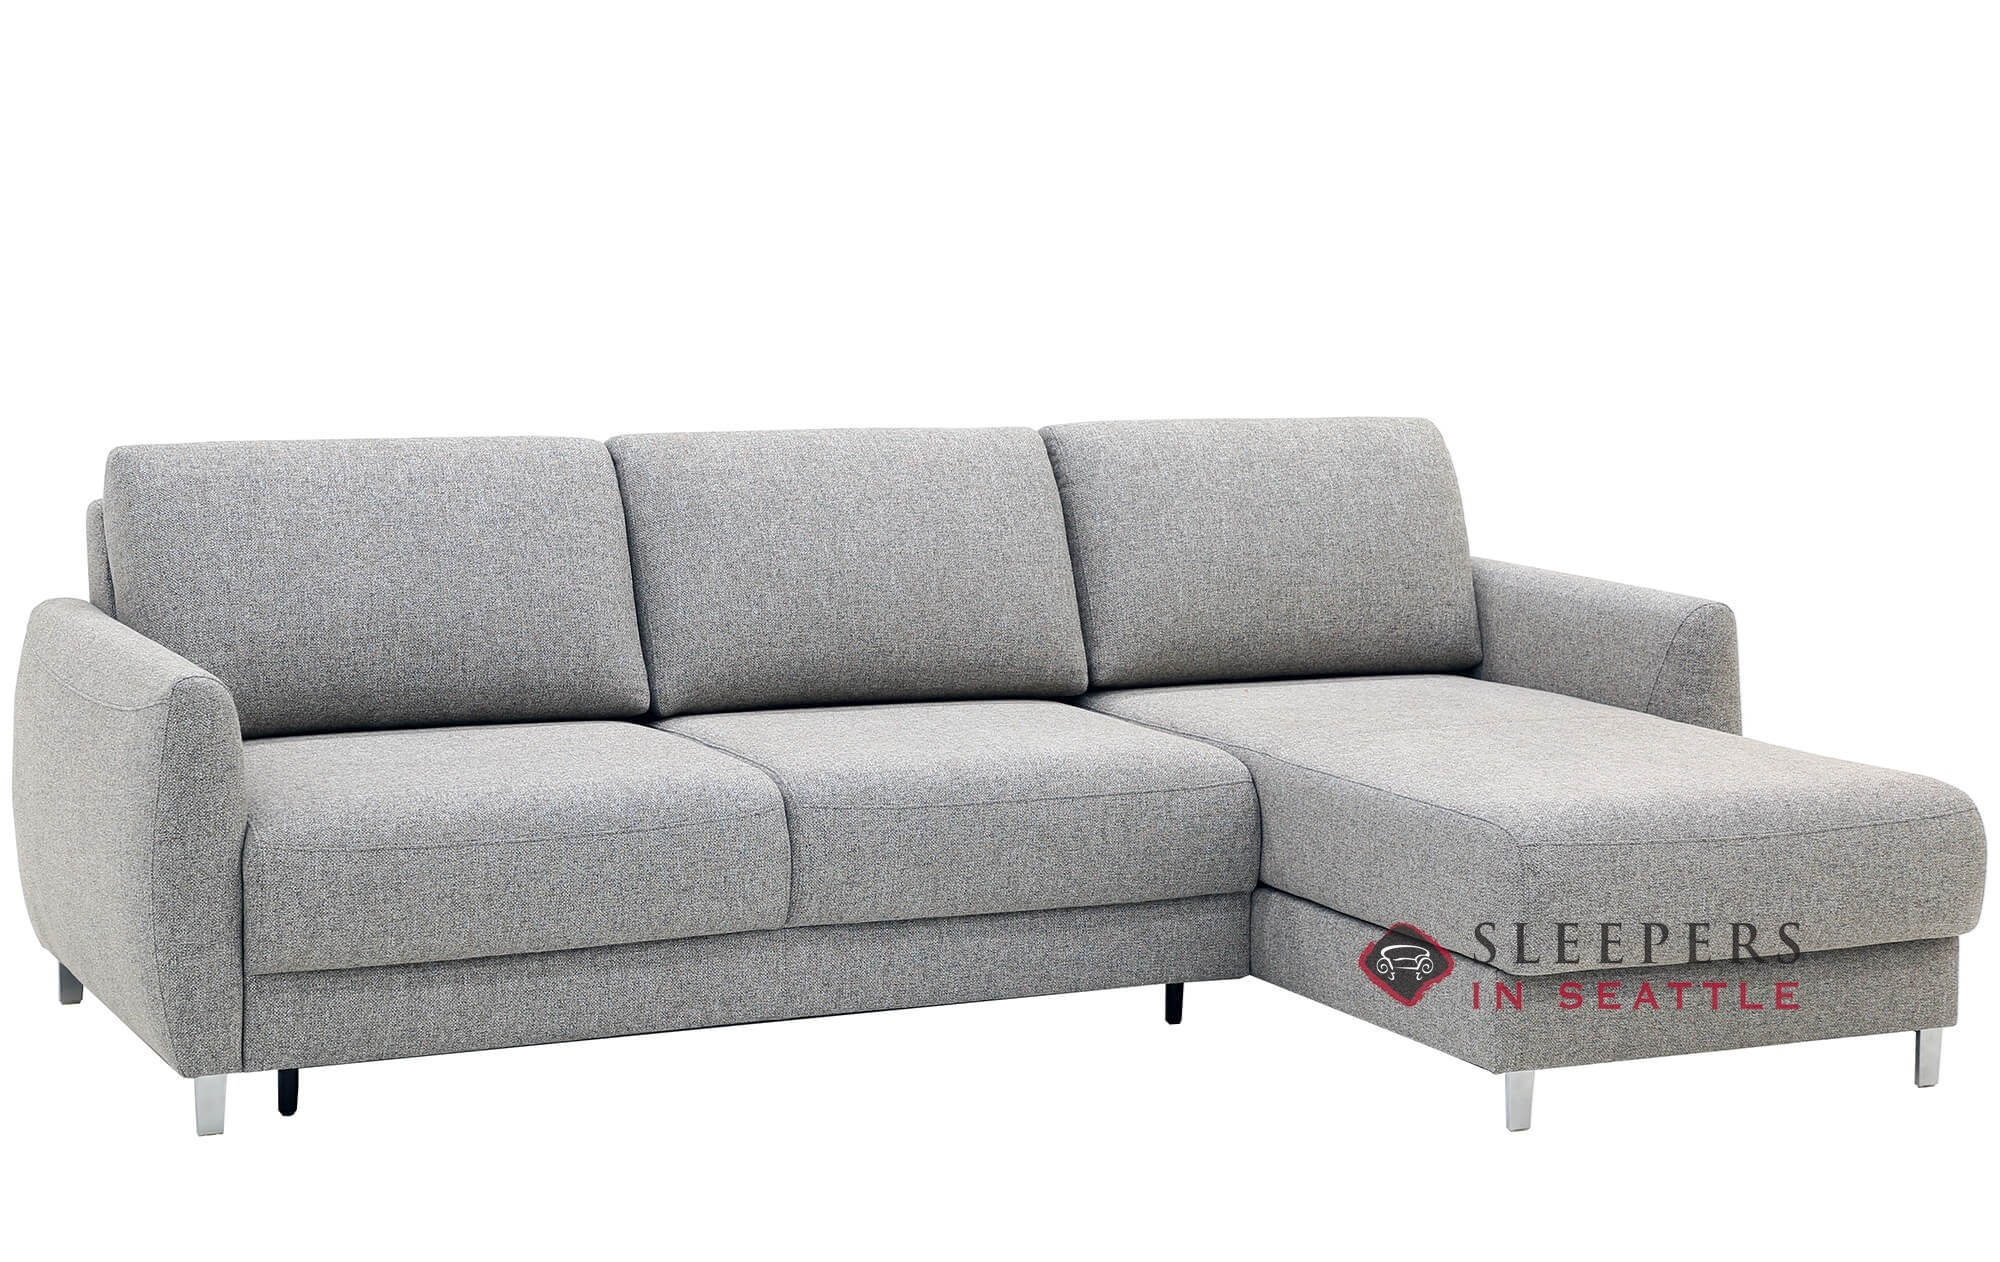 Quick Ship Delta Chaise Sectional Fabric Sofa By Luonto Fast Shipping Delta Chaise Sectional Sofa Bed Sleepersinseattle Com